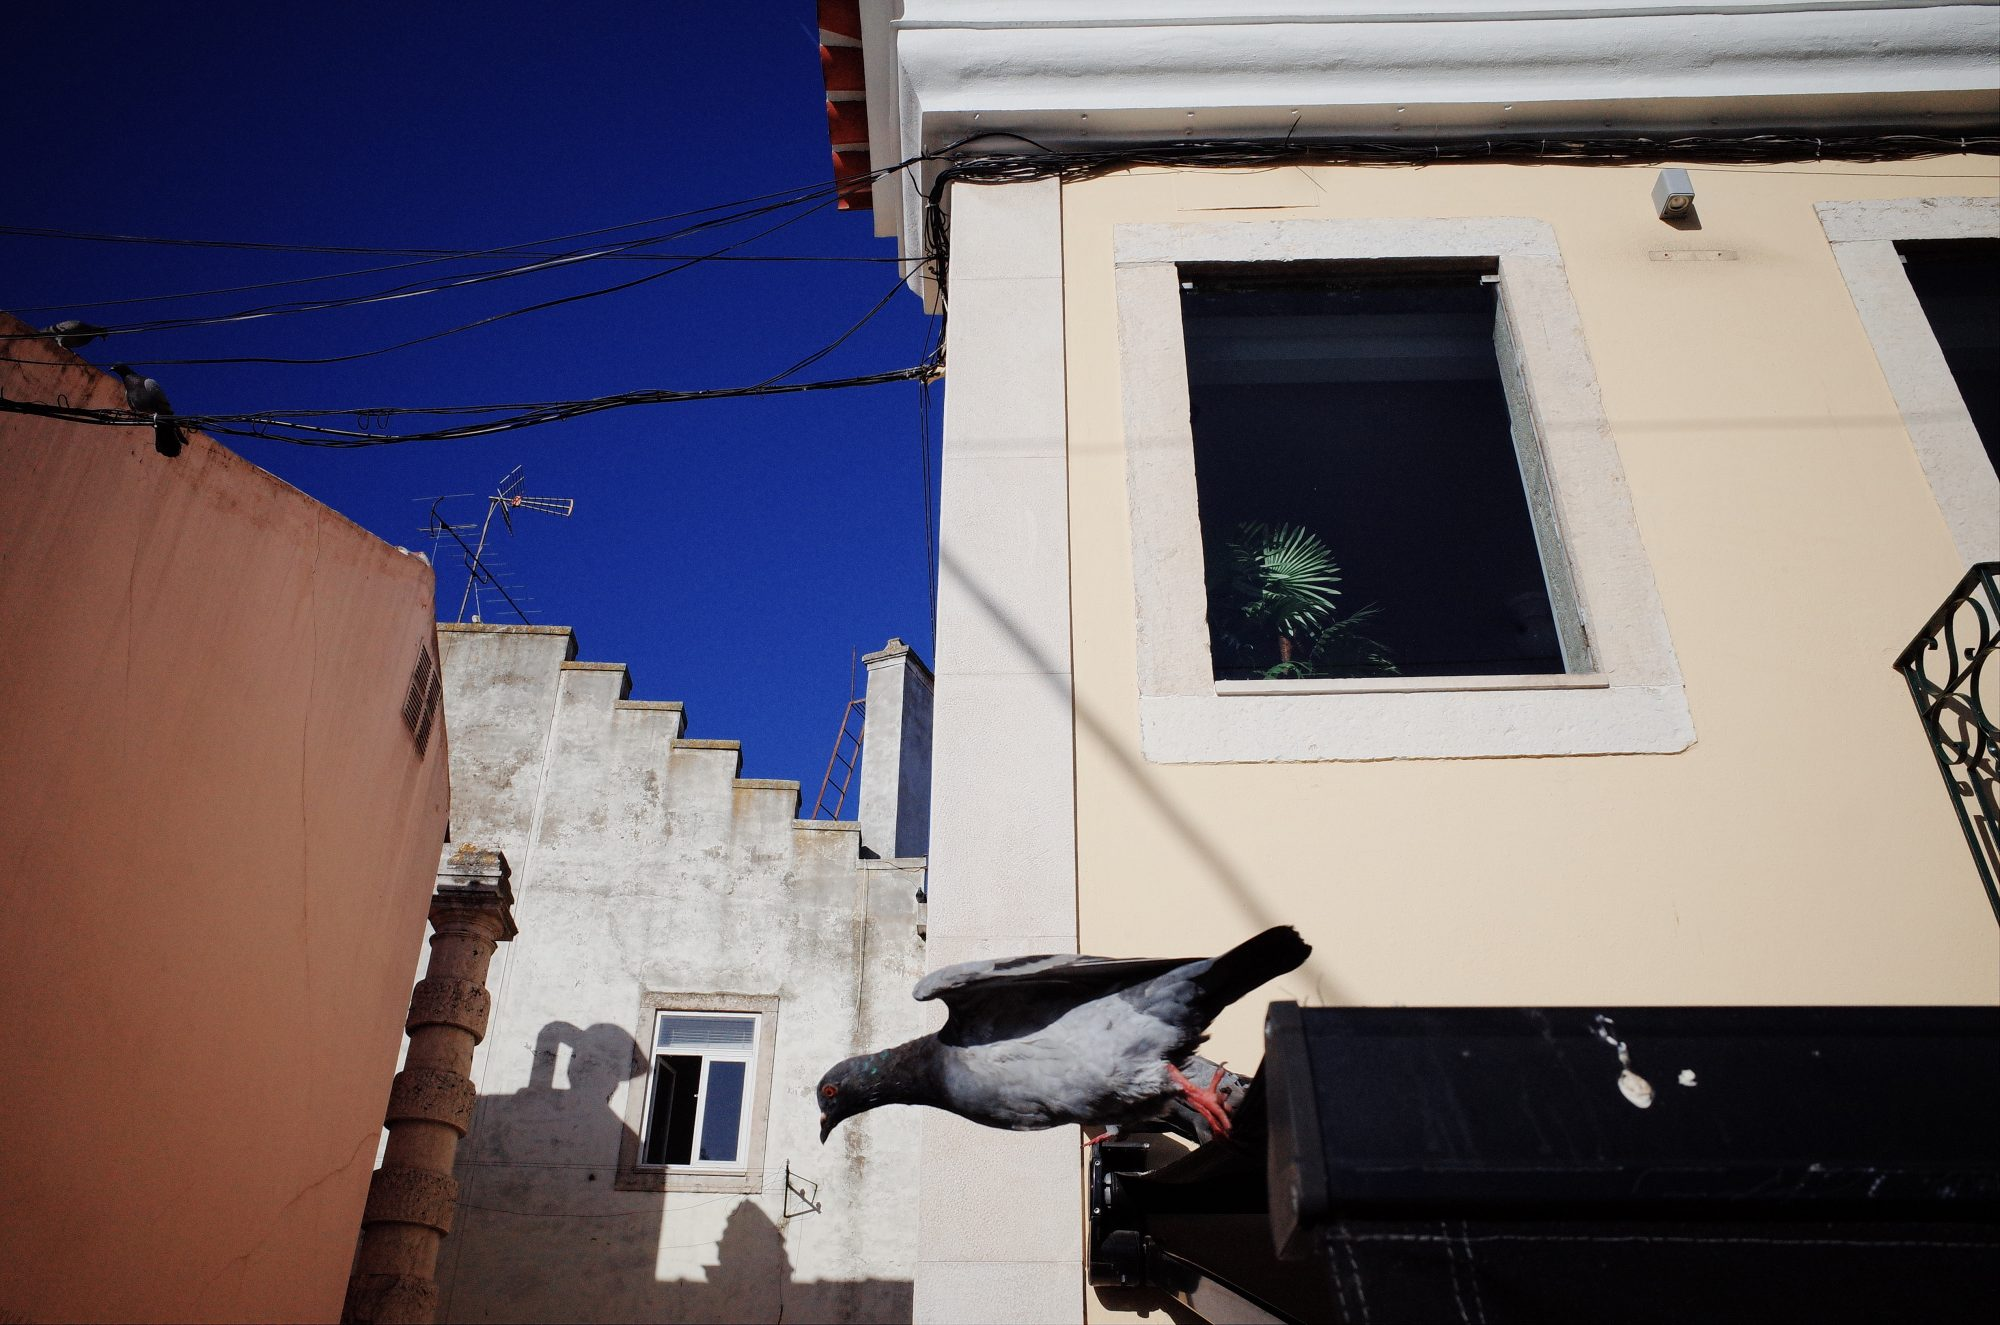 Pigeon diving. Belen, 2018